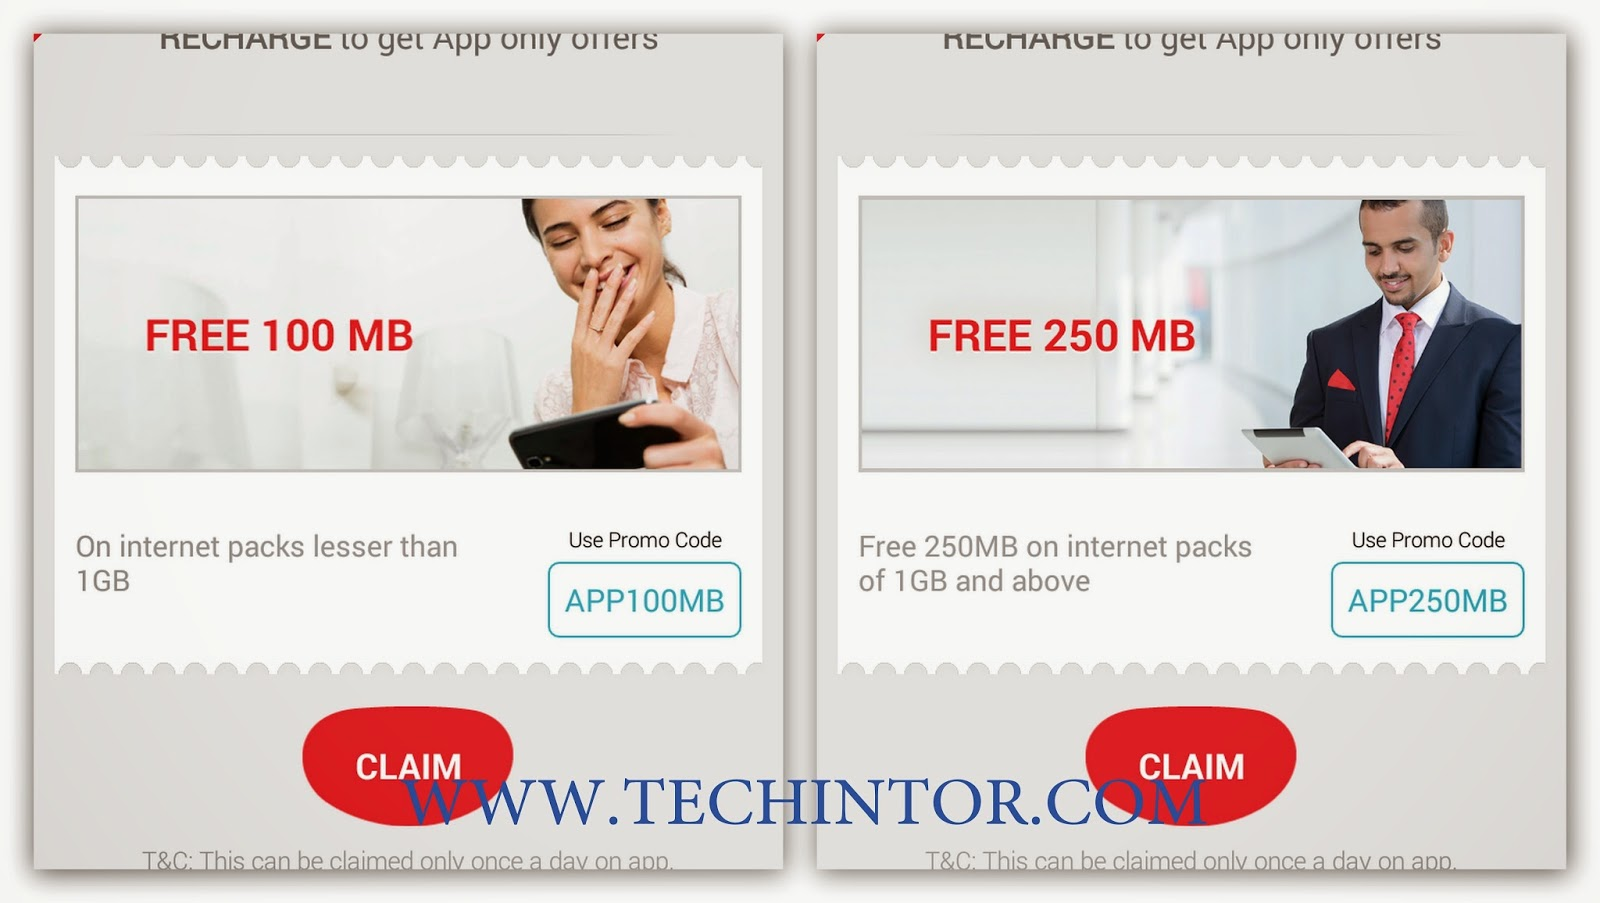 Airtel talk time offers remarkable